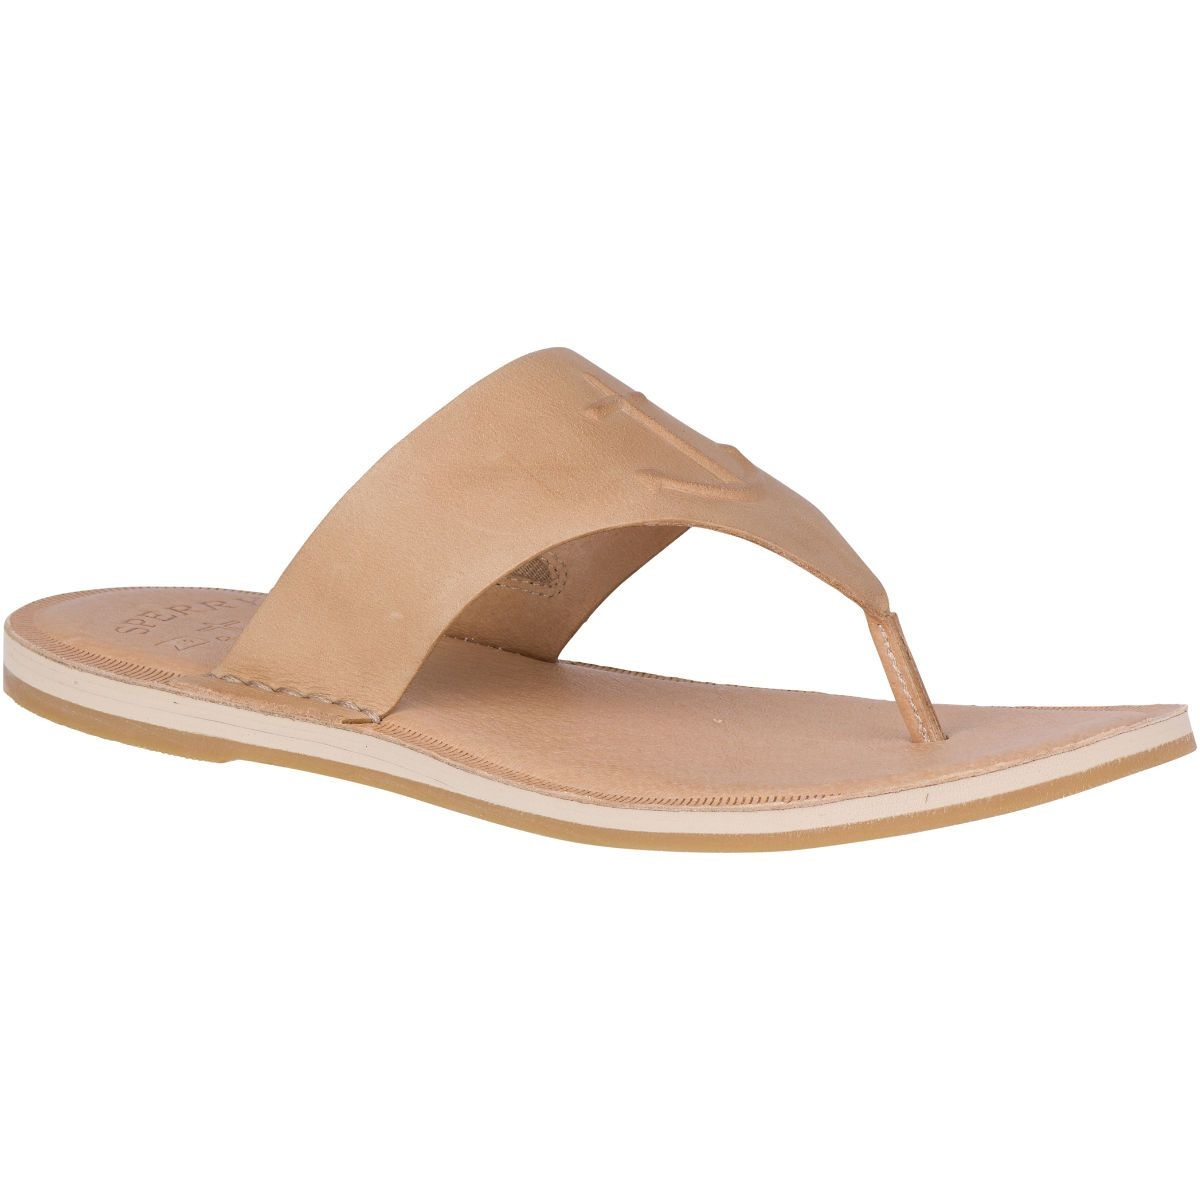 SPERRY SPERRY Seaport Leather Sandal - Tan (WOMEN'S)